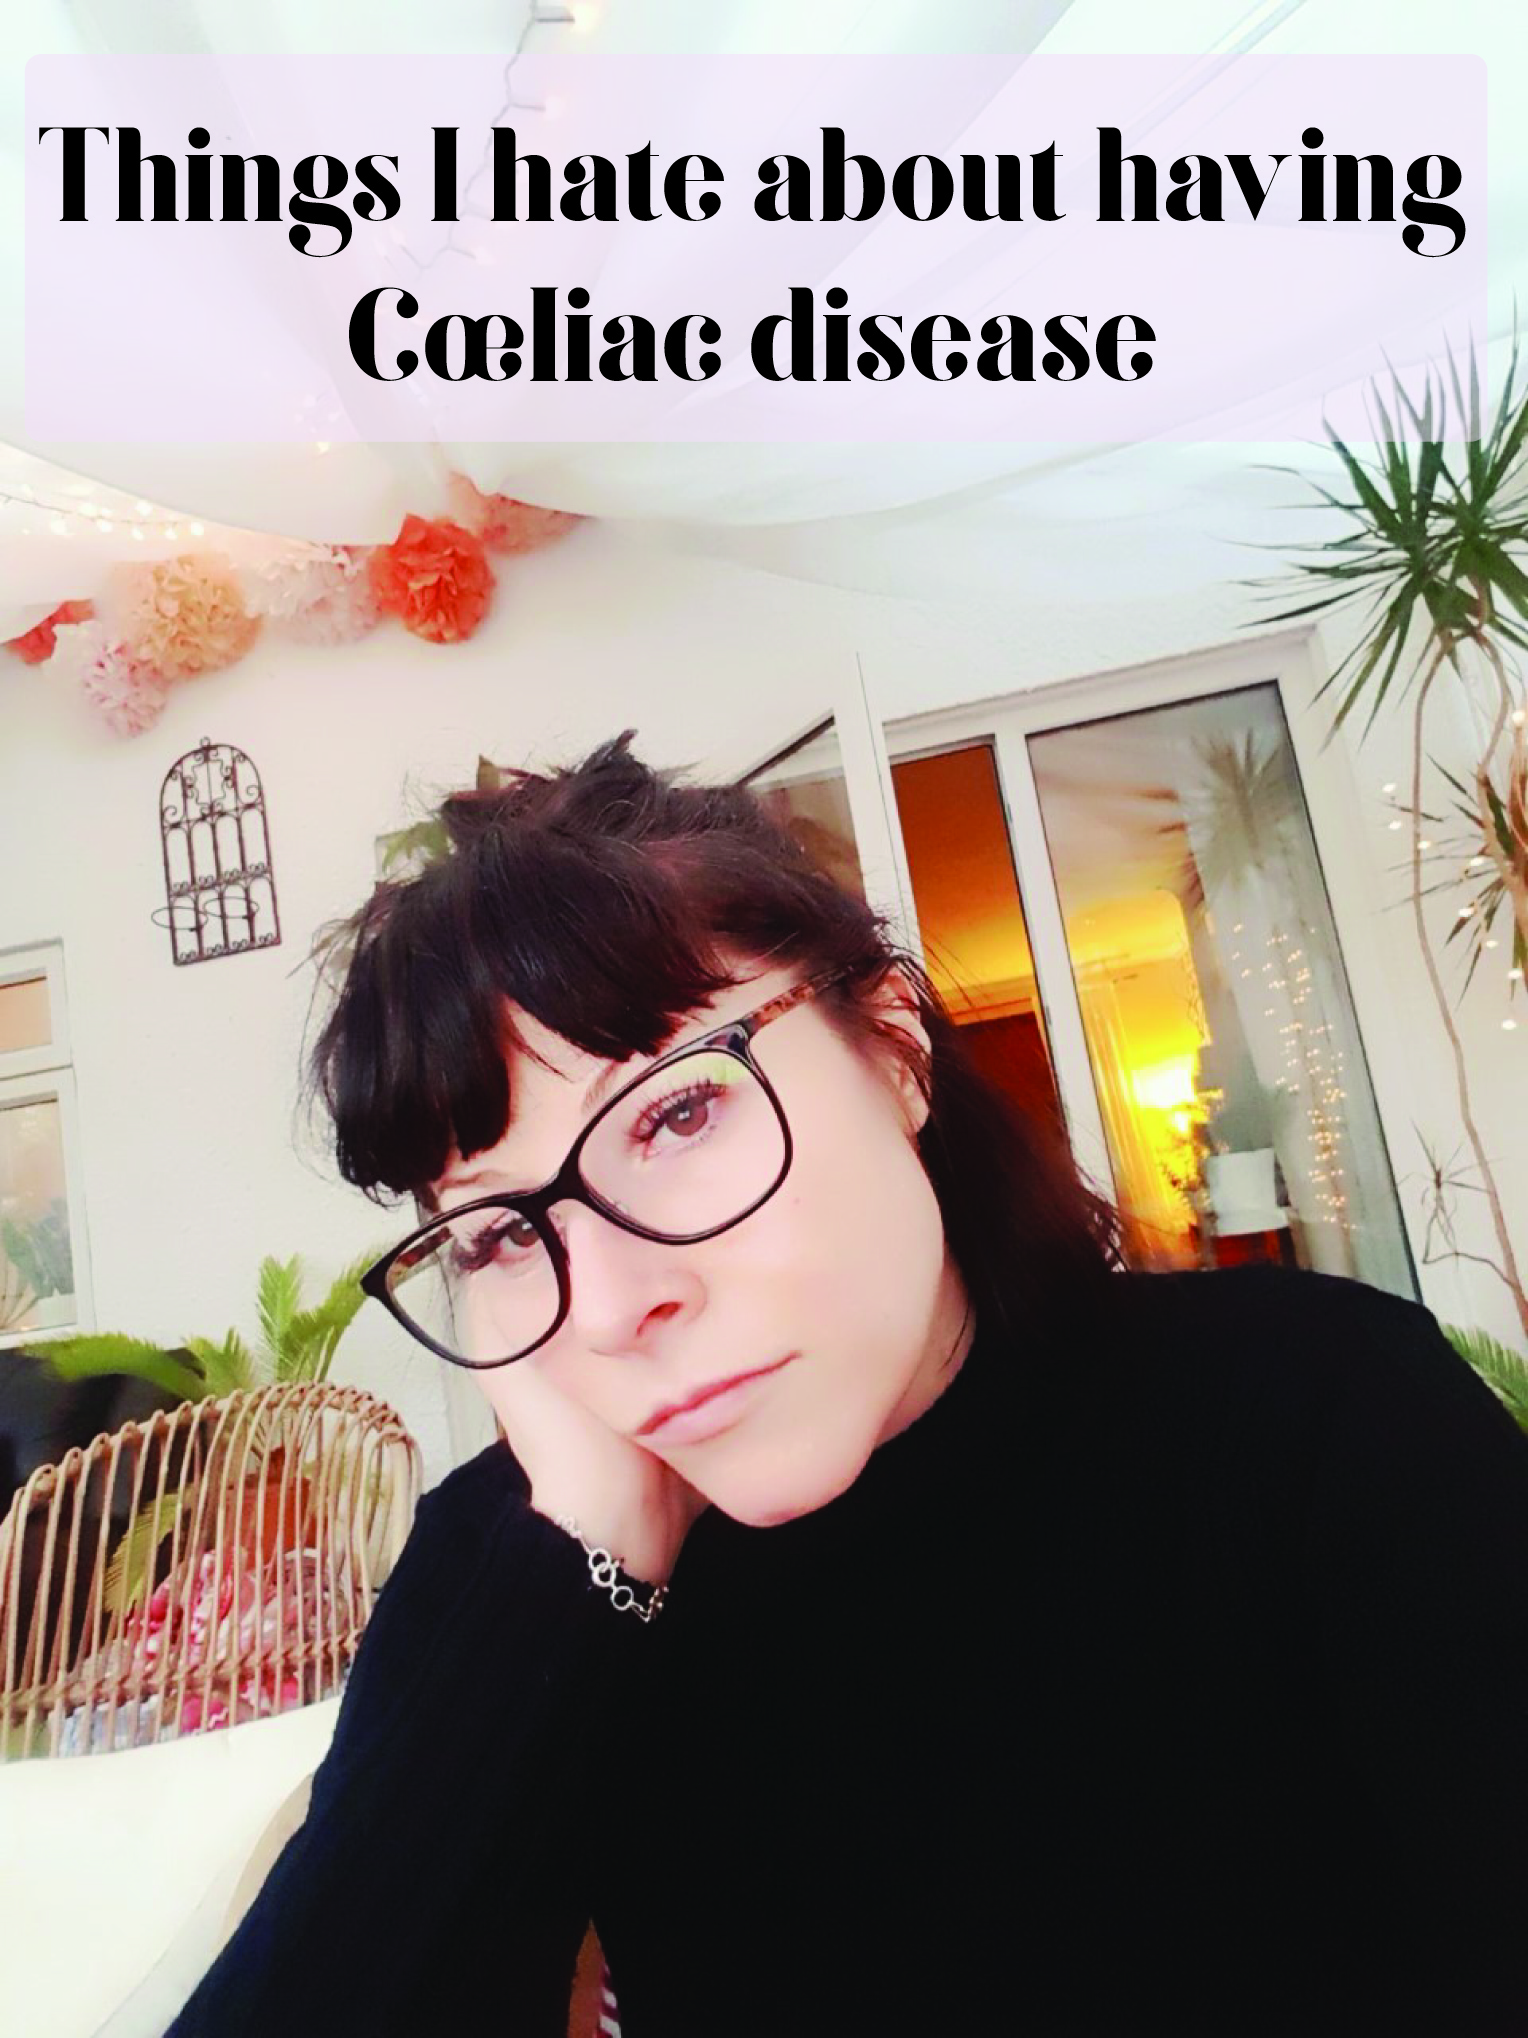 Things I hate about having coeliac disease